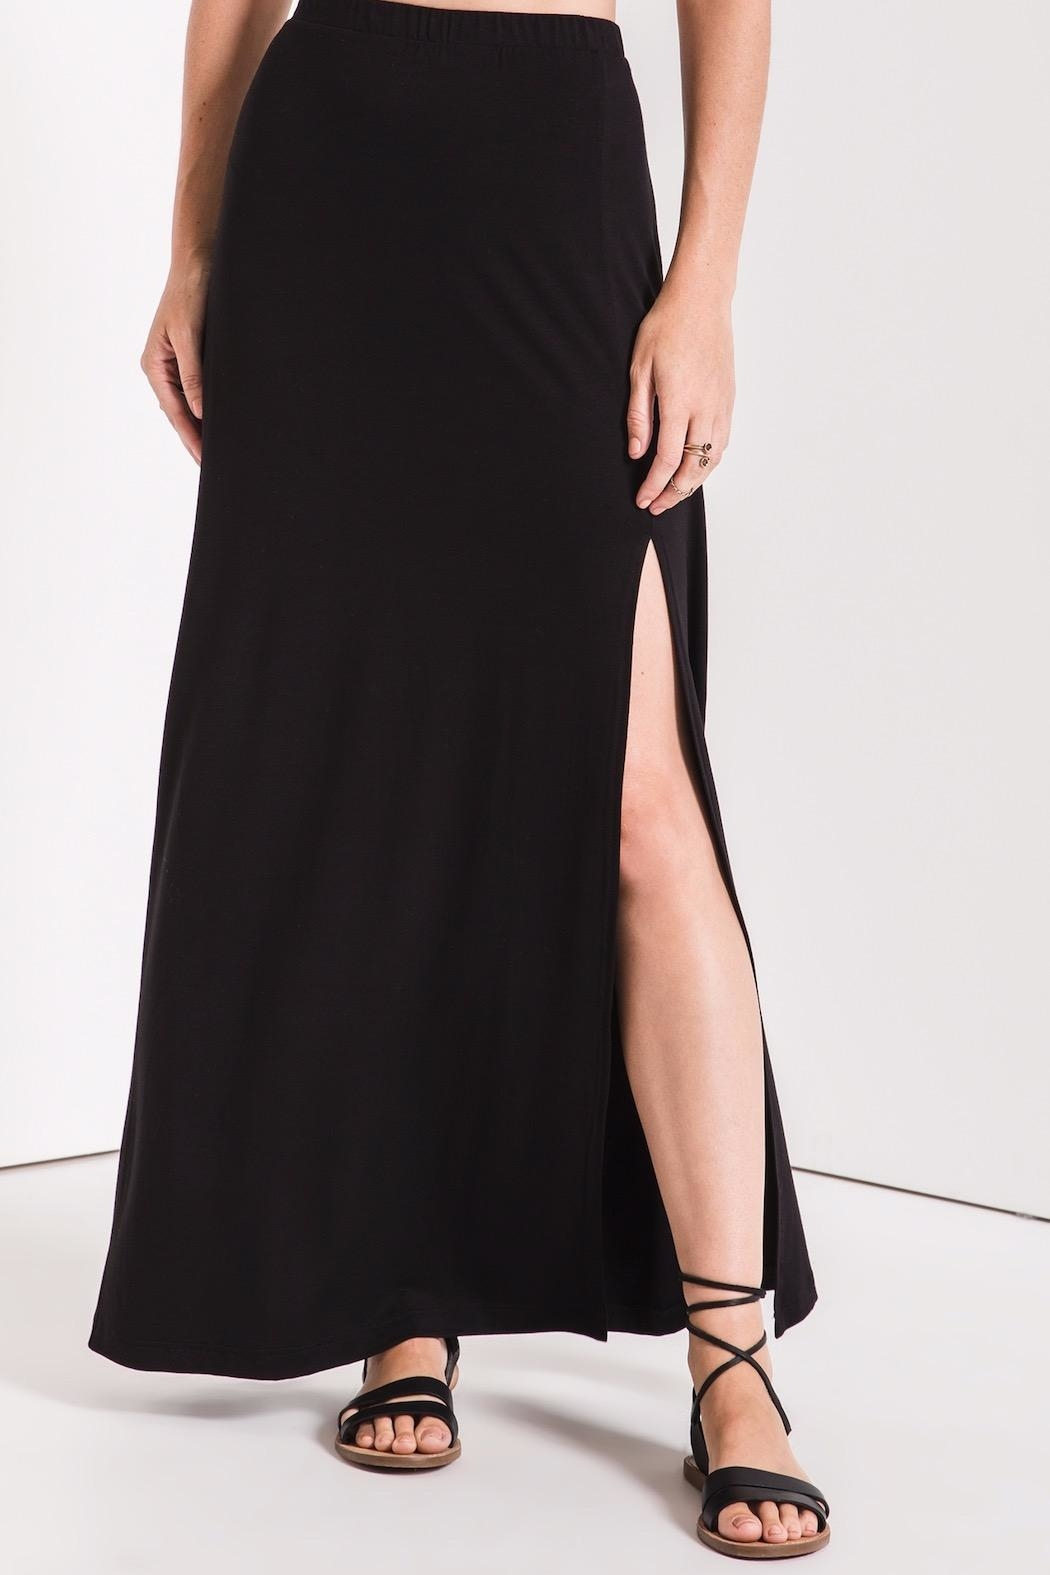 z supply Side Slit Maxi - Side Cropped Image